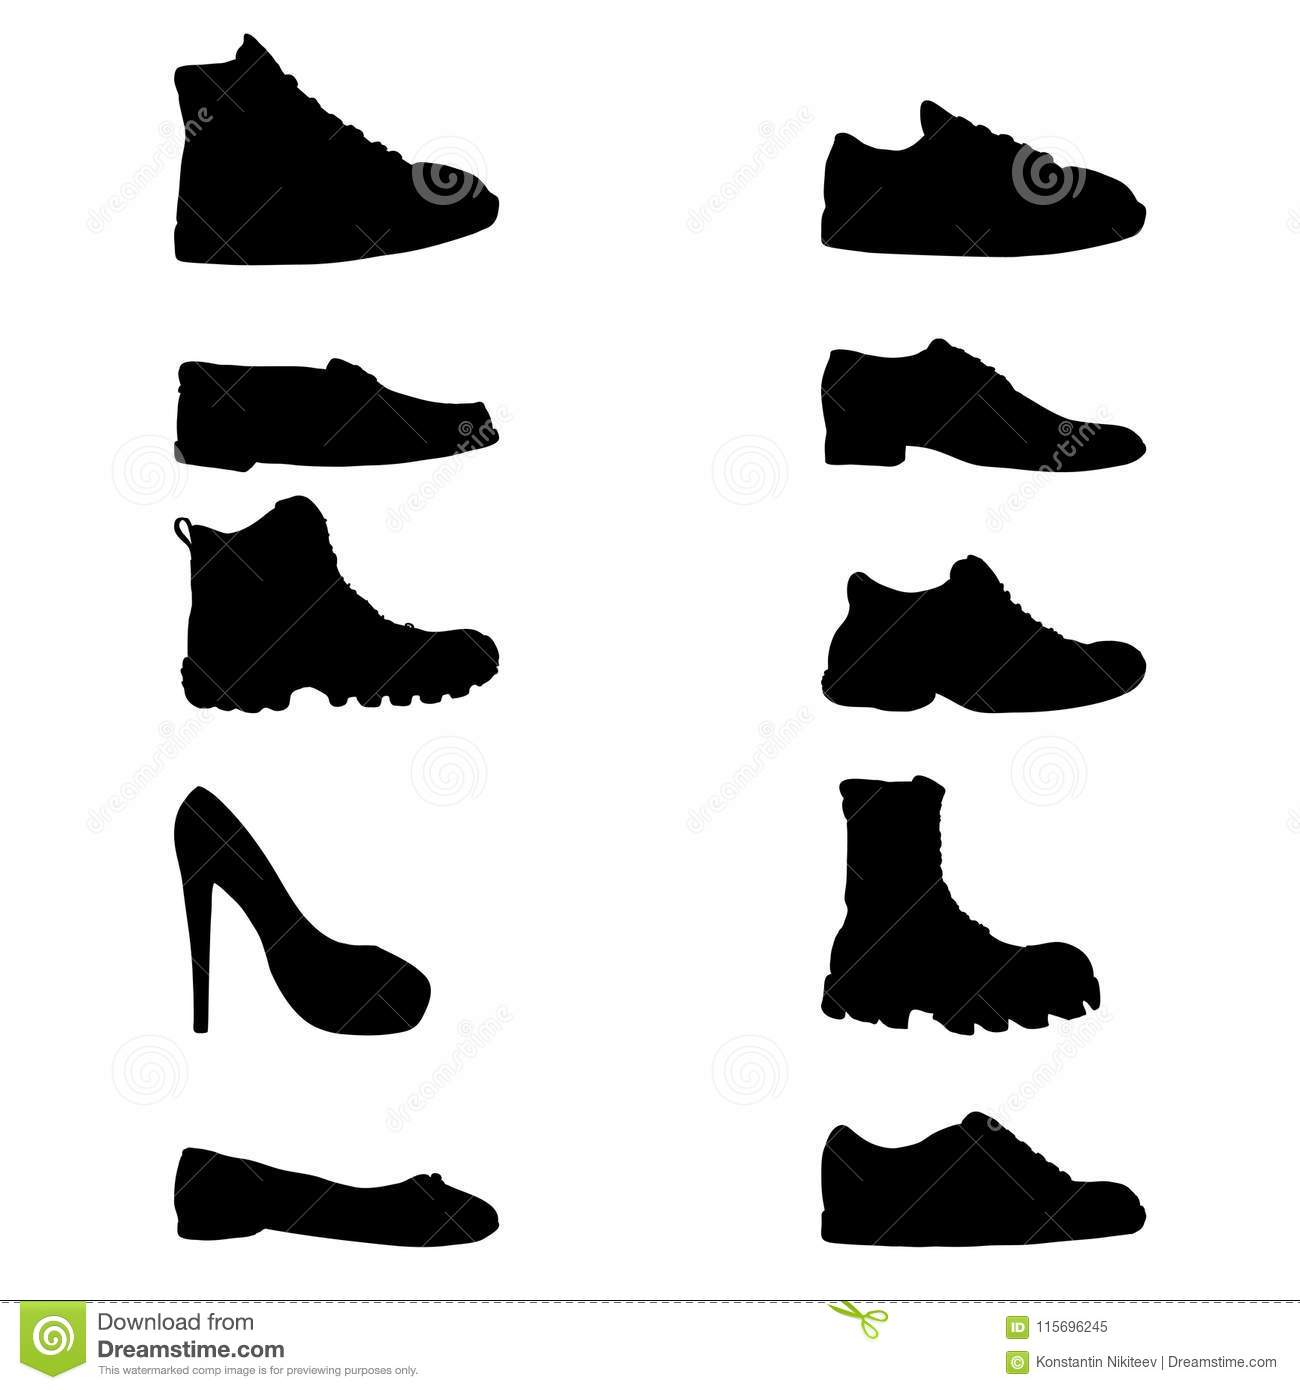 b466f5133983 Vector Set of Black Silhouette Illustrations - Different Shoes